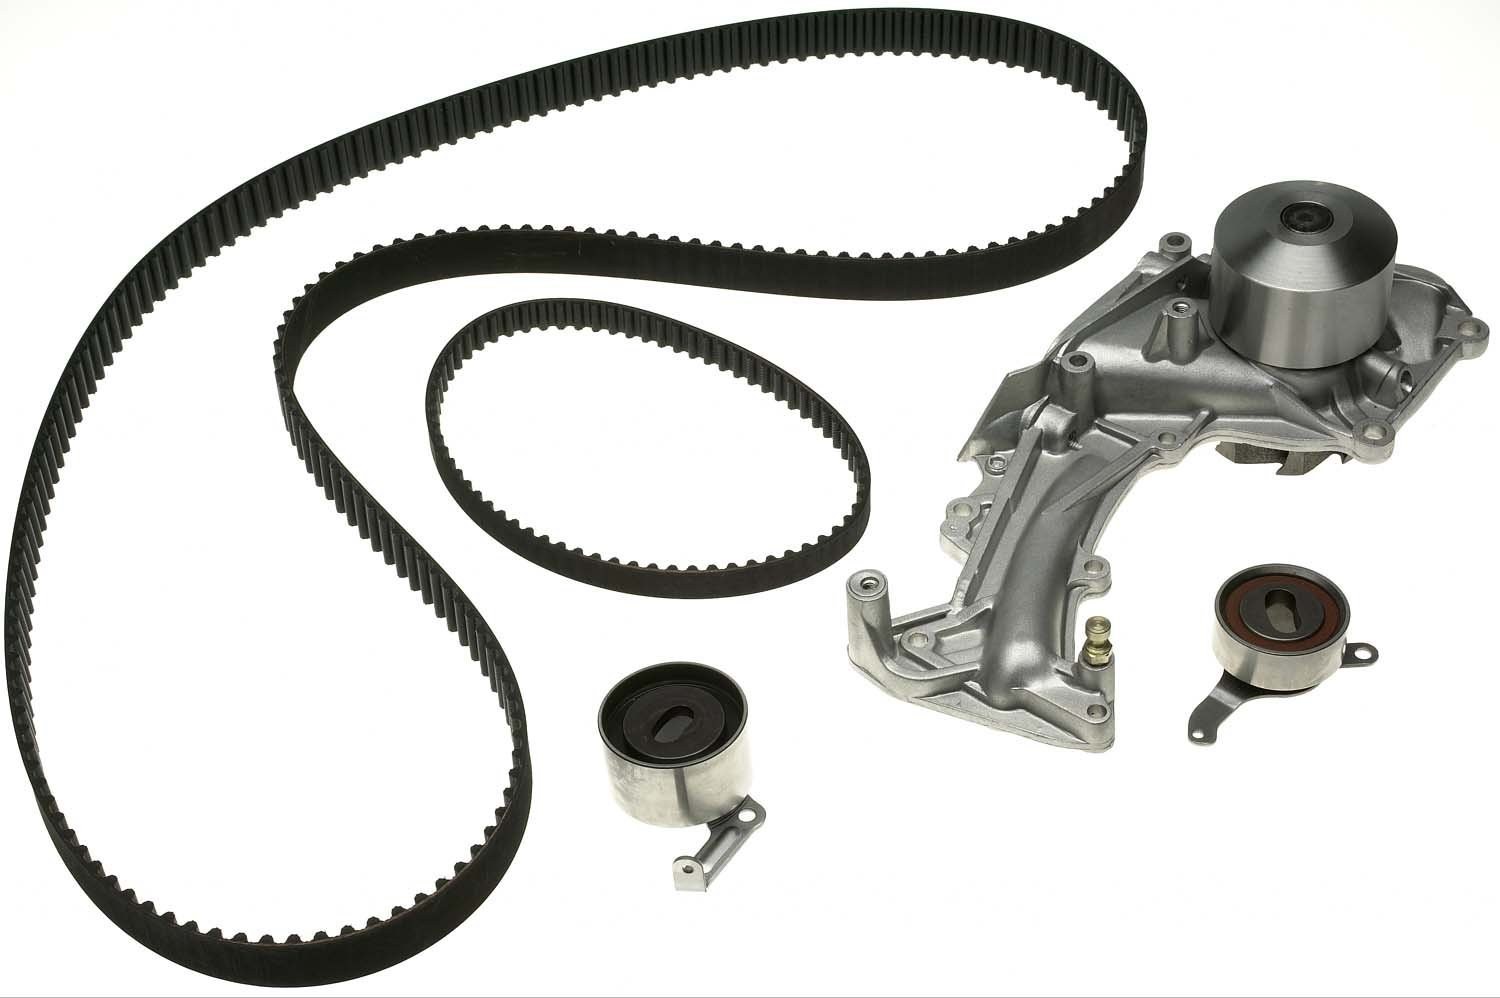 1998 Acura RL Engine Timing Belt Kit with Water Pump ZO TCKWP279